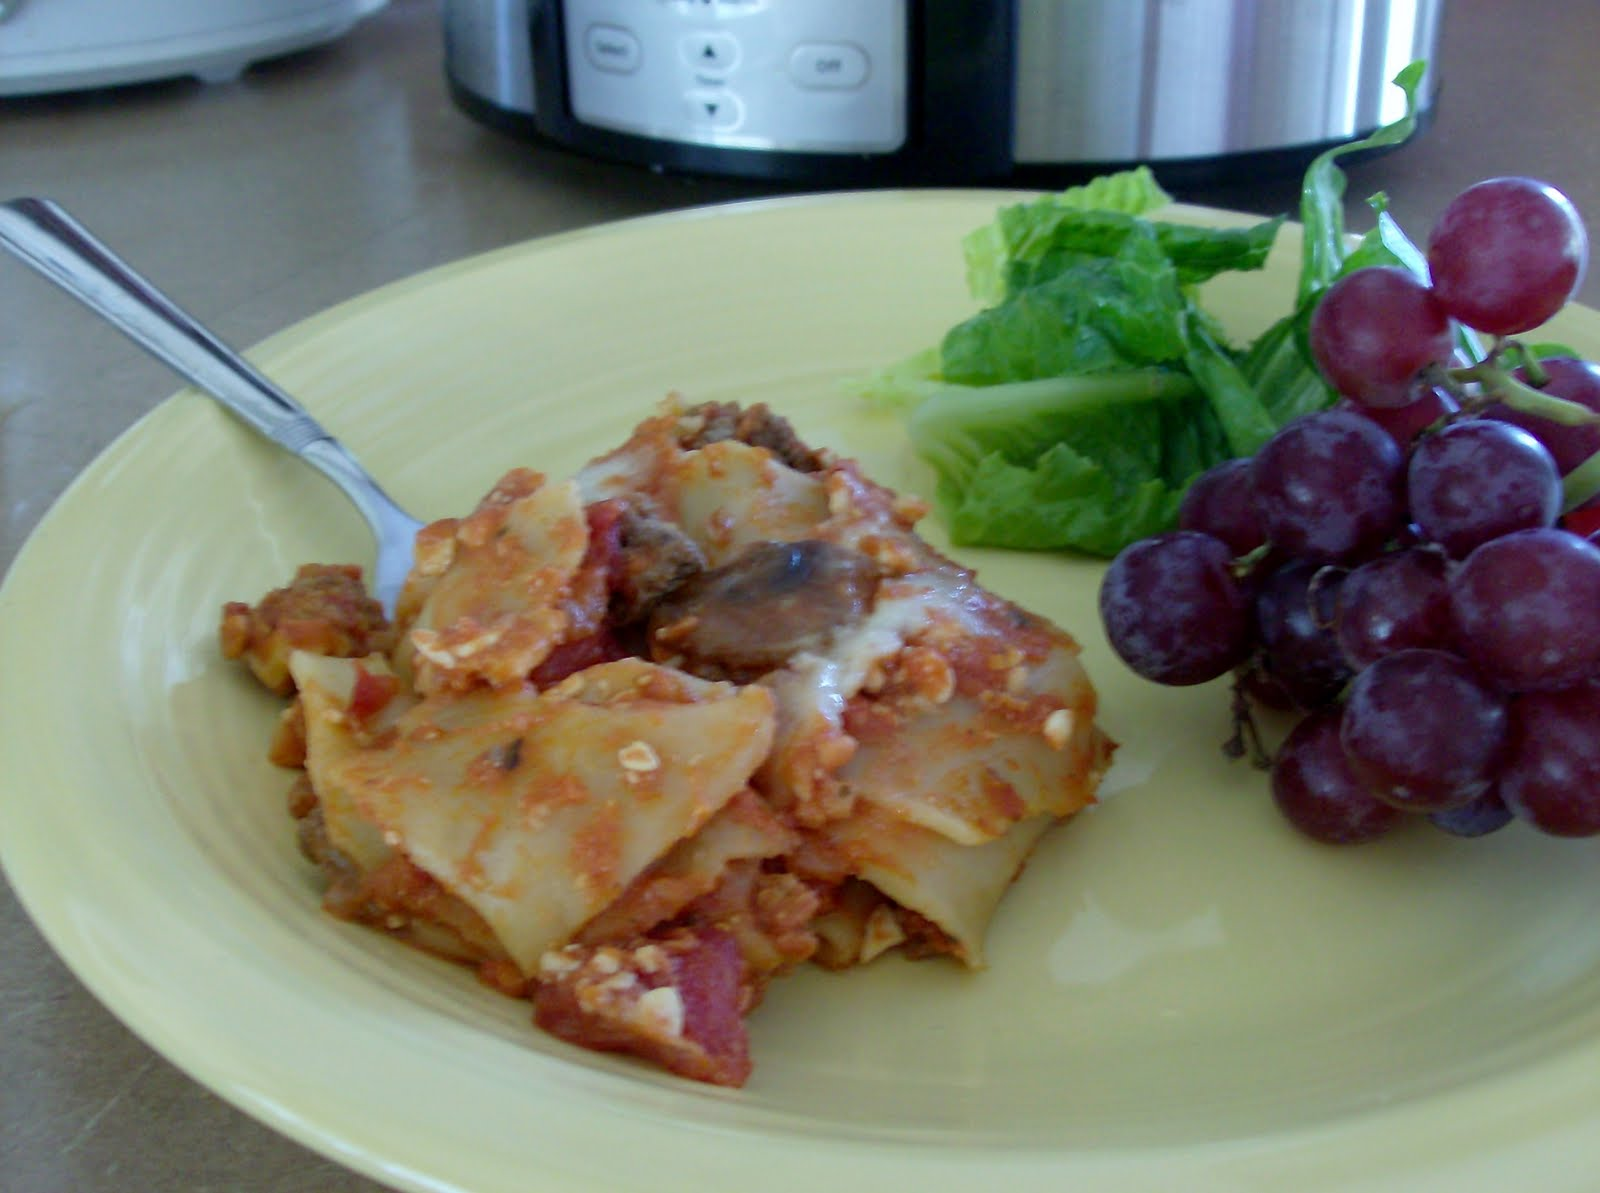 365 Days of Slow Cooking: Recipe for Slow Cooker Turkey Lasagna